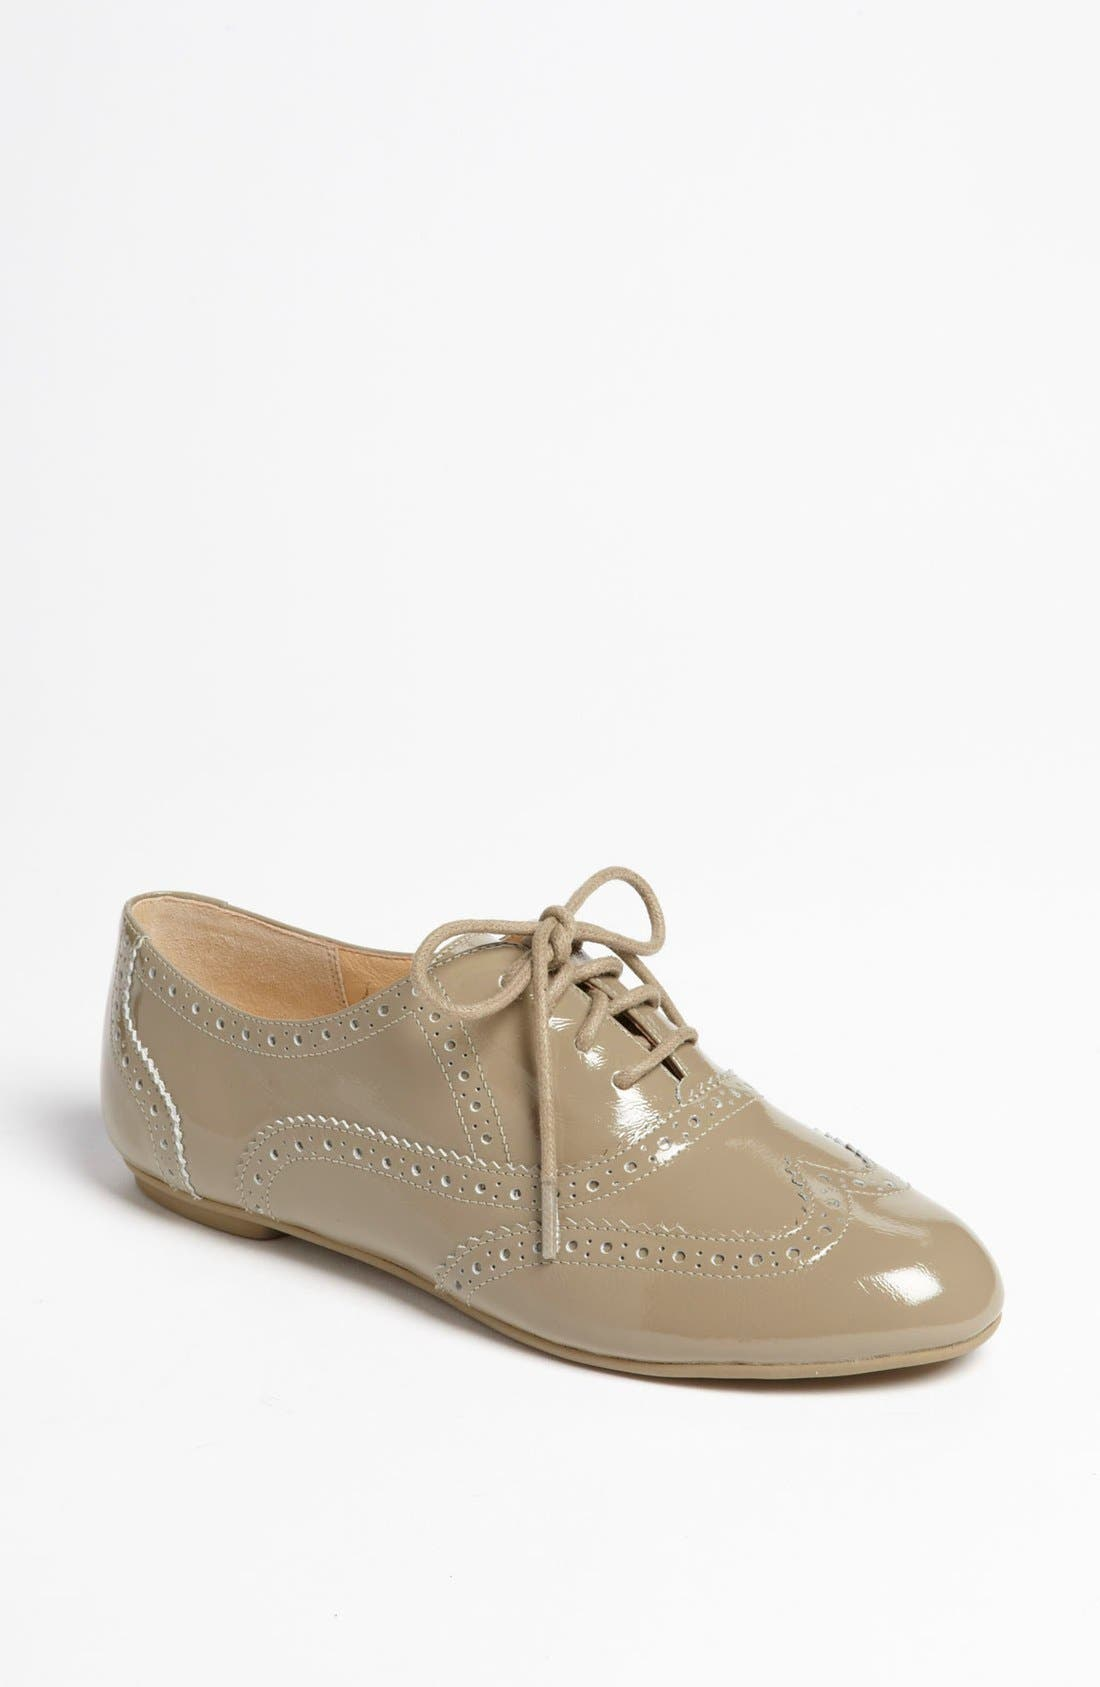 Alternate Image 1 Selected - Cole Haan 'Tompkins' Oxford